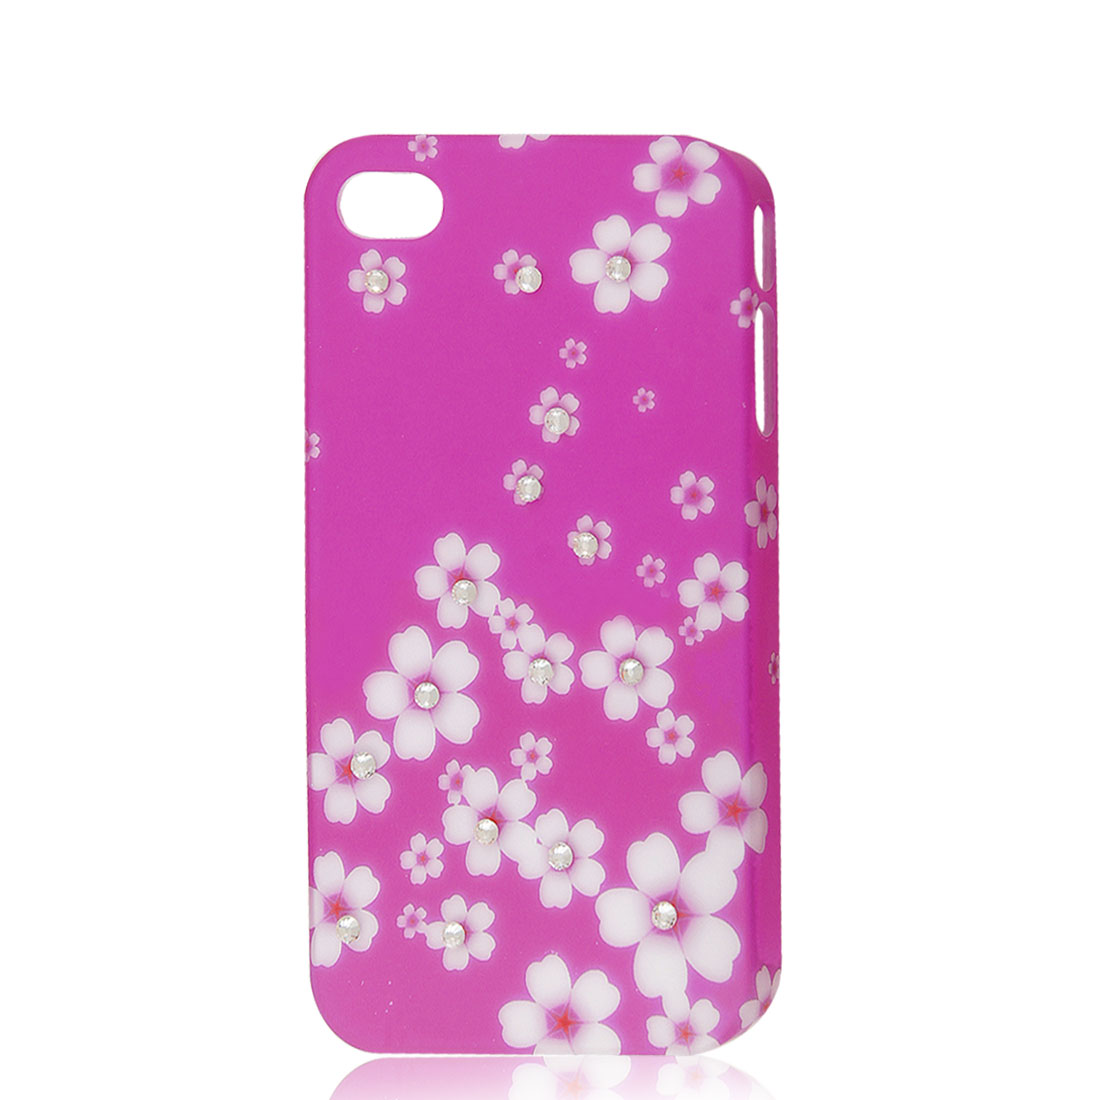 Glitter Rhinestone Flower Hard Case Back Cover Fuchsia for iPhone 4 4G